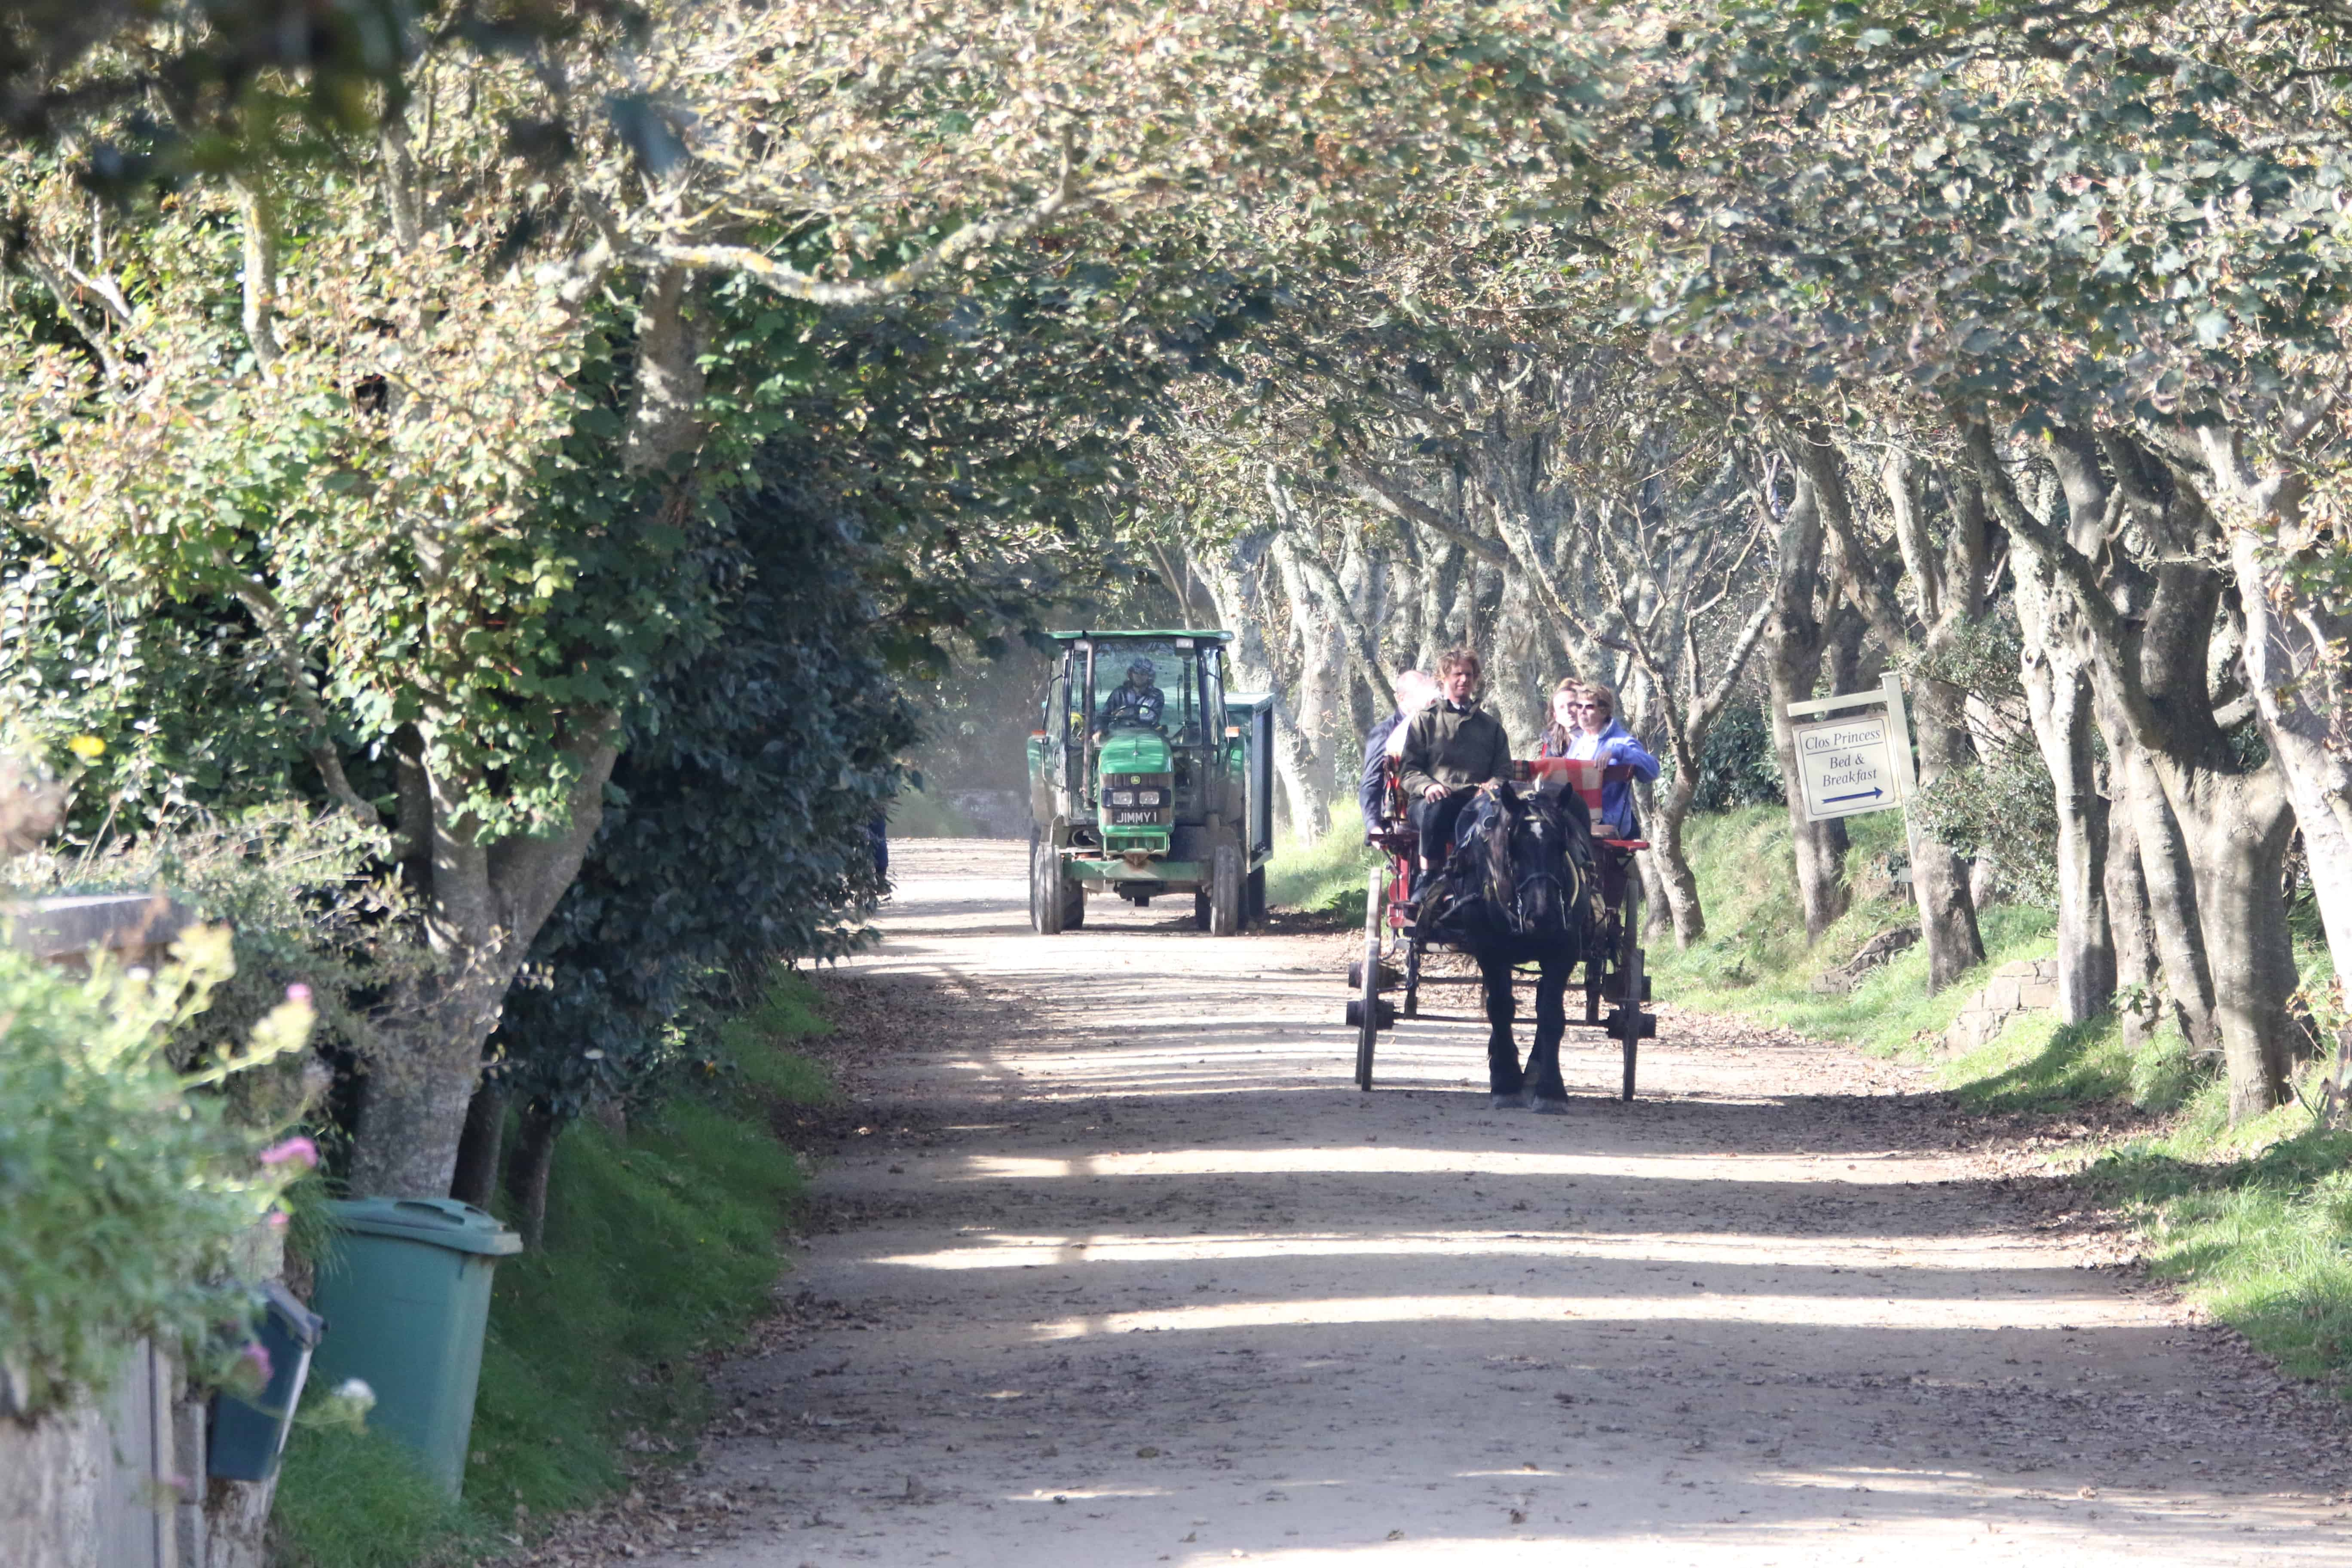 Horse-drawn carriage and agricultural tractor are the vehicles on Sark, as well as bicycles and feet. Copyright: Dr Mike Pienkowski